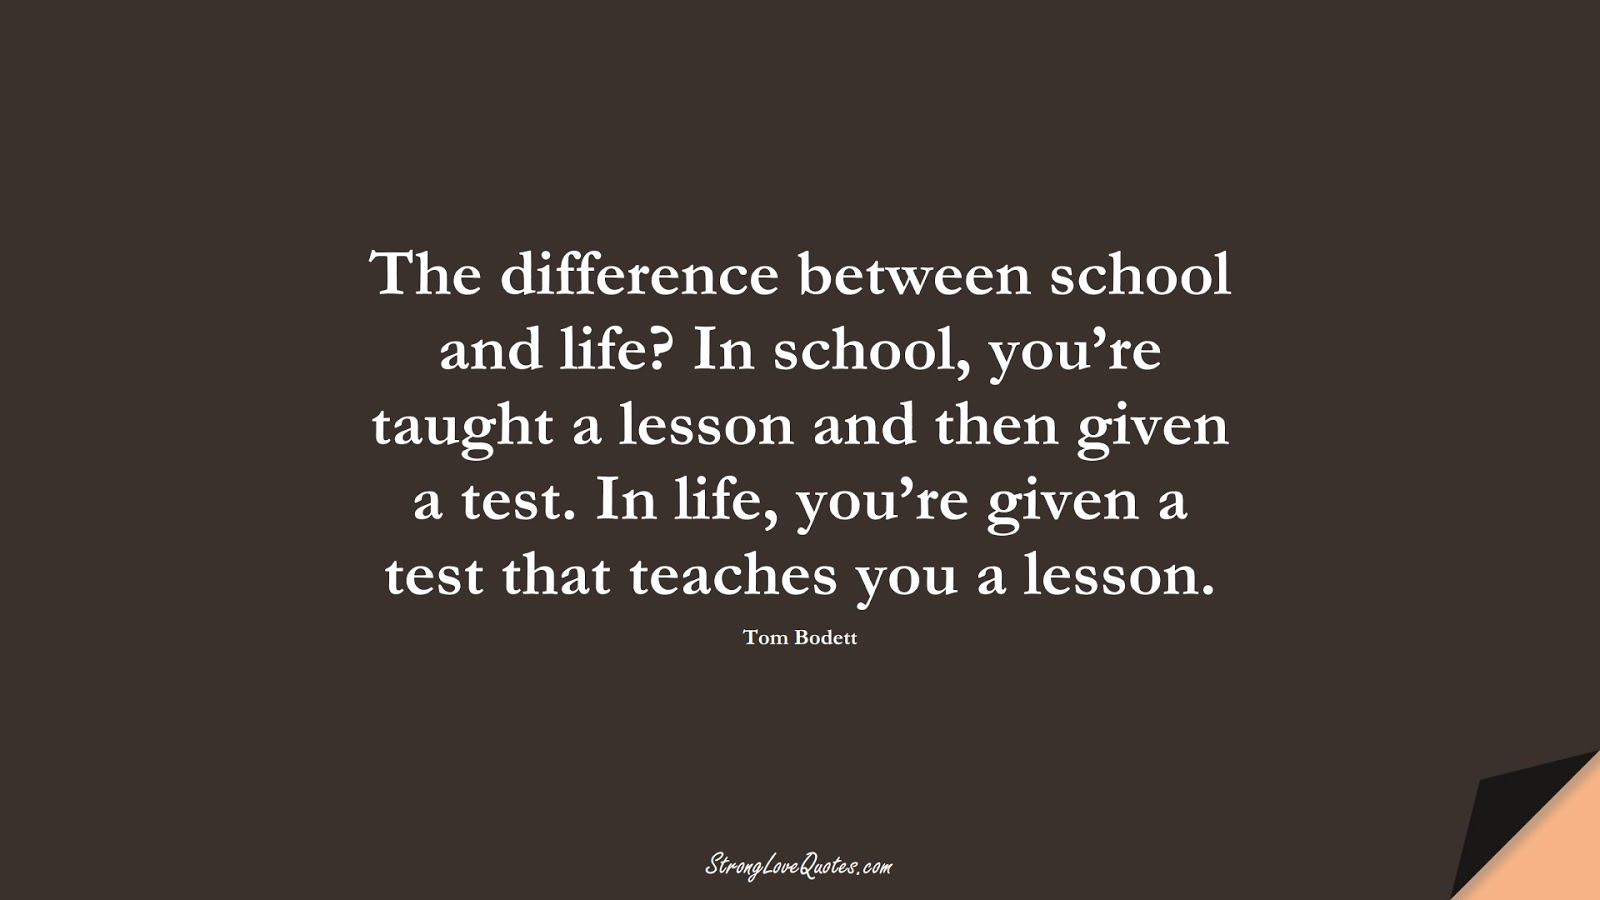 The difference between school and life? In school, you're taught a lesson and then given a test. In life, you're given a test that teaches you a lesson. (Tom Bodett);  #EducationQuotes